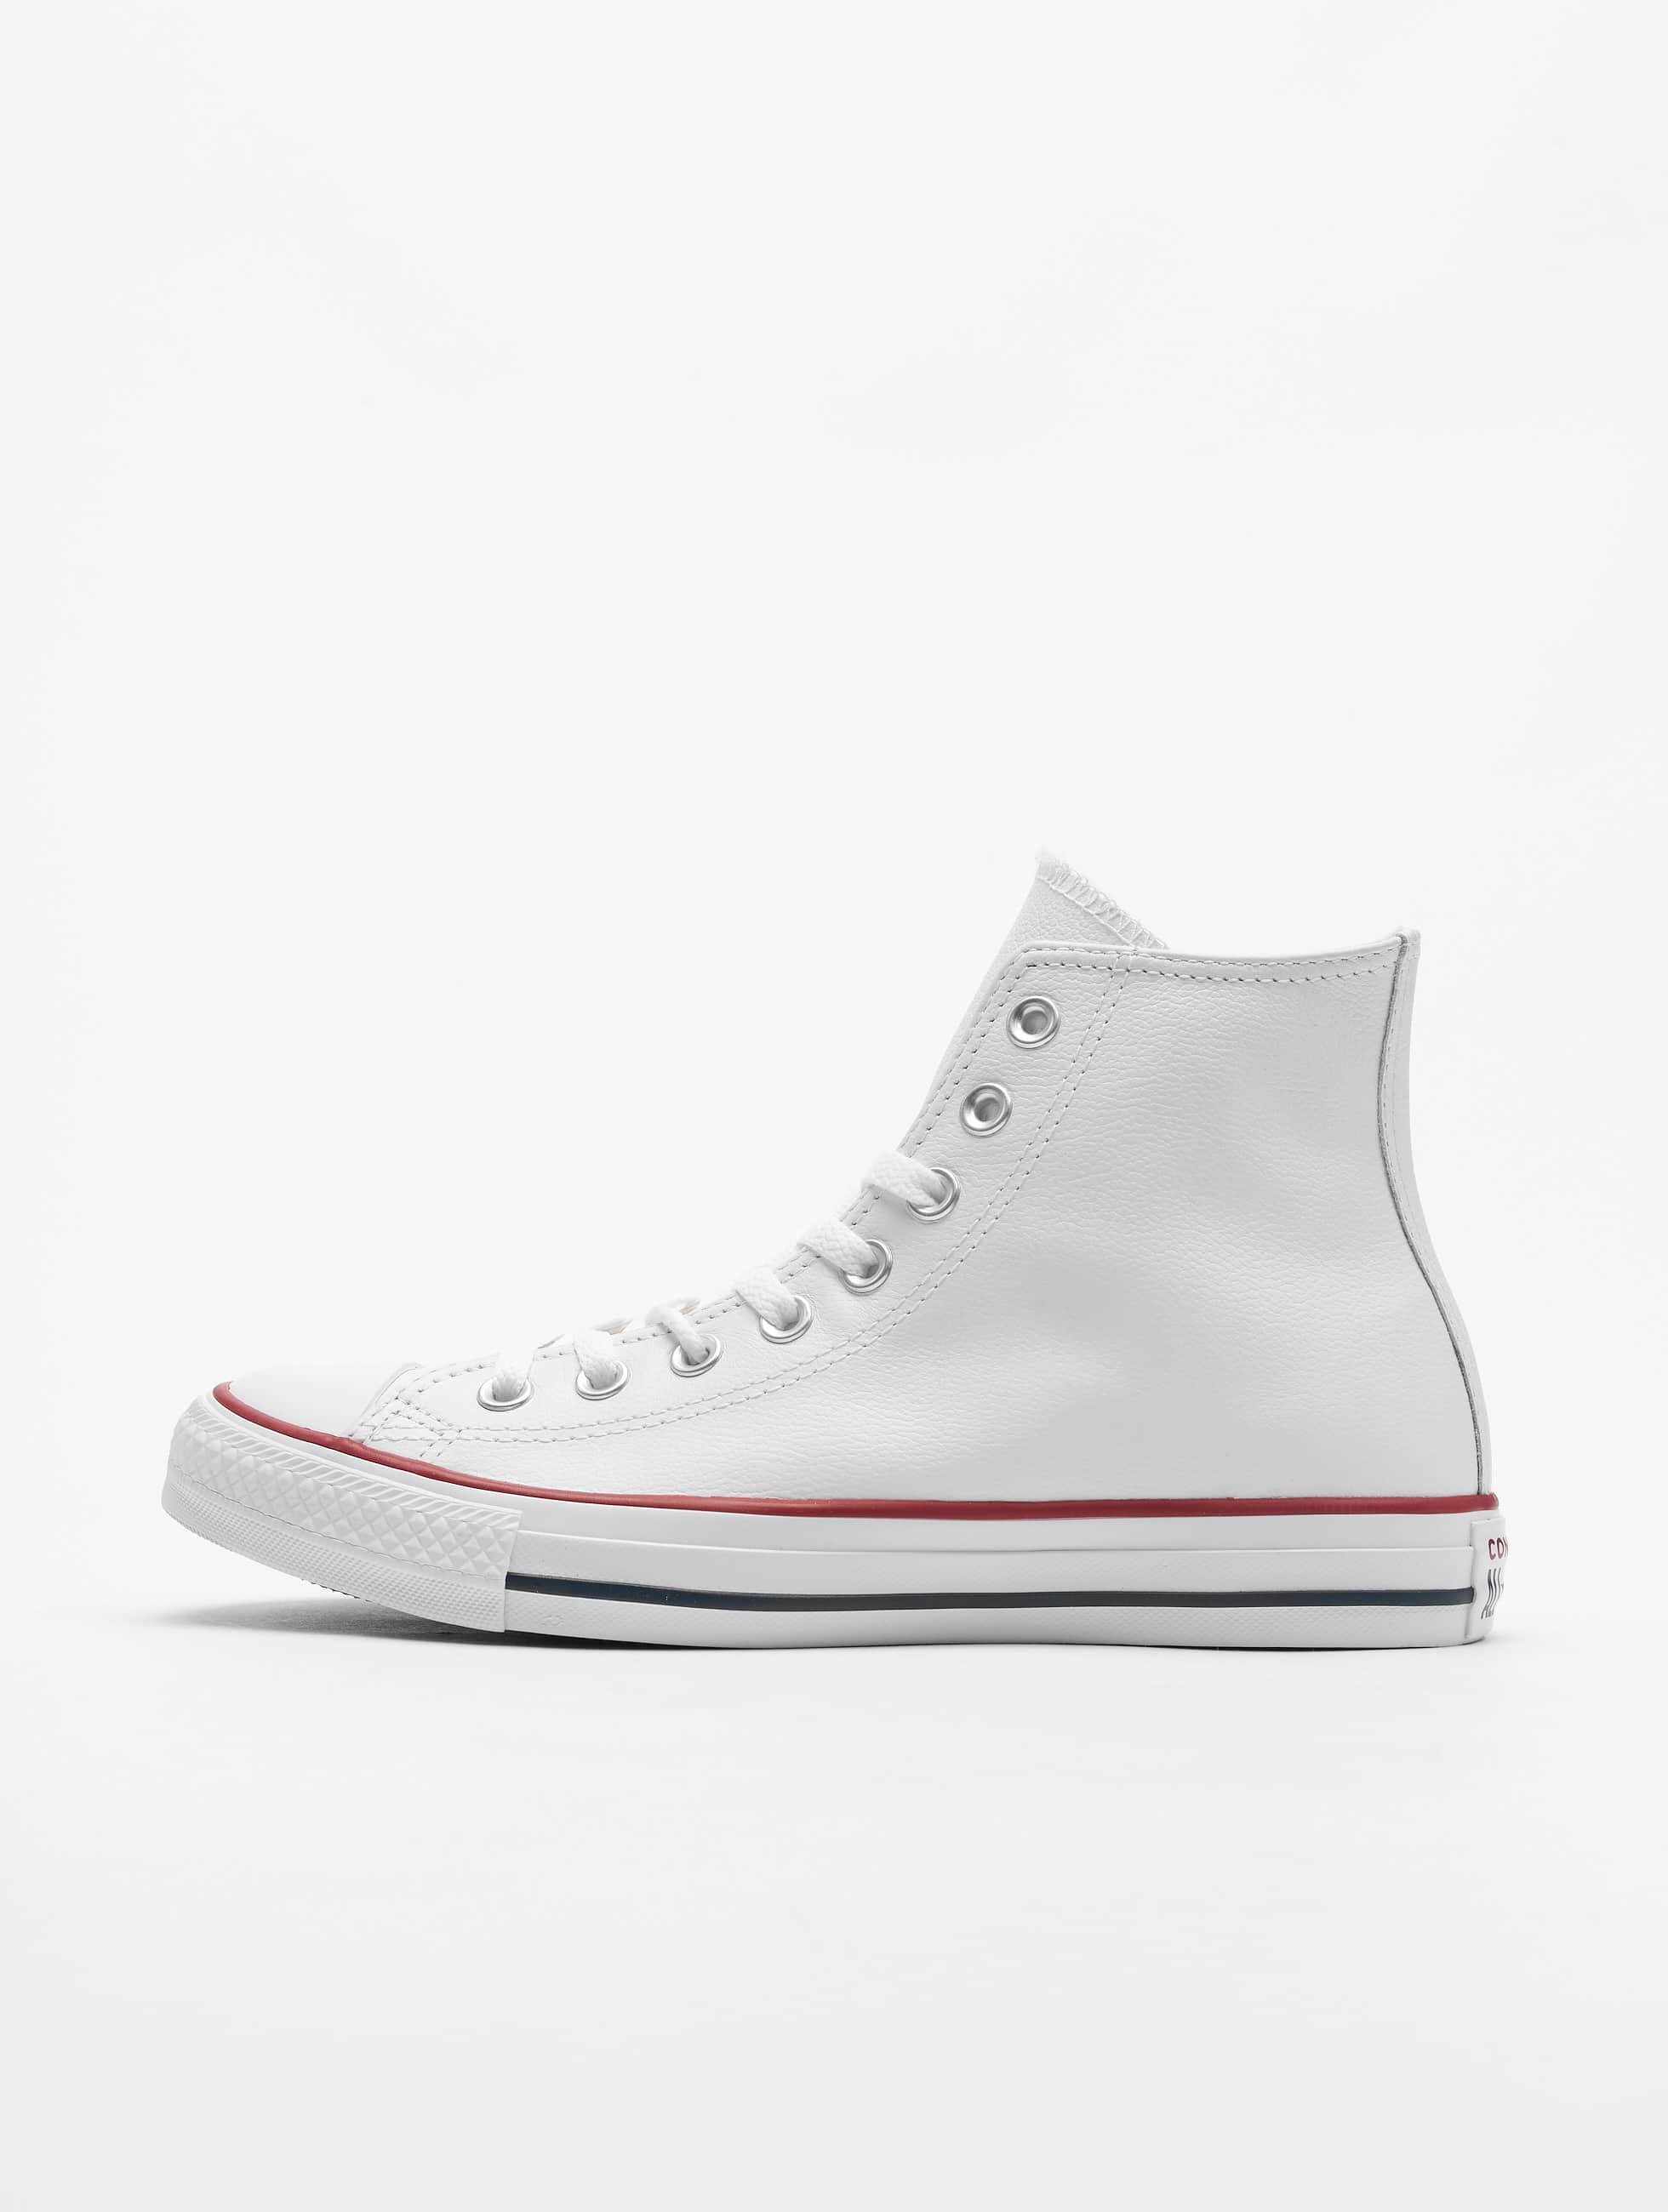 Converse Chuck Taylor All Star Sneakers White